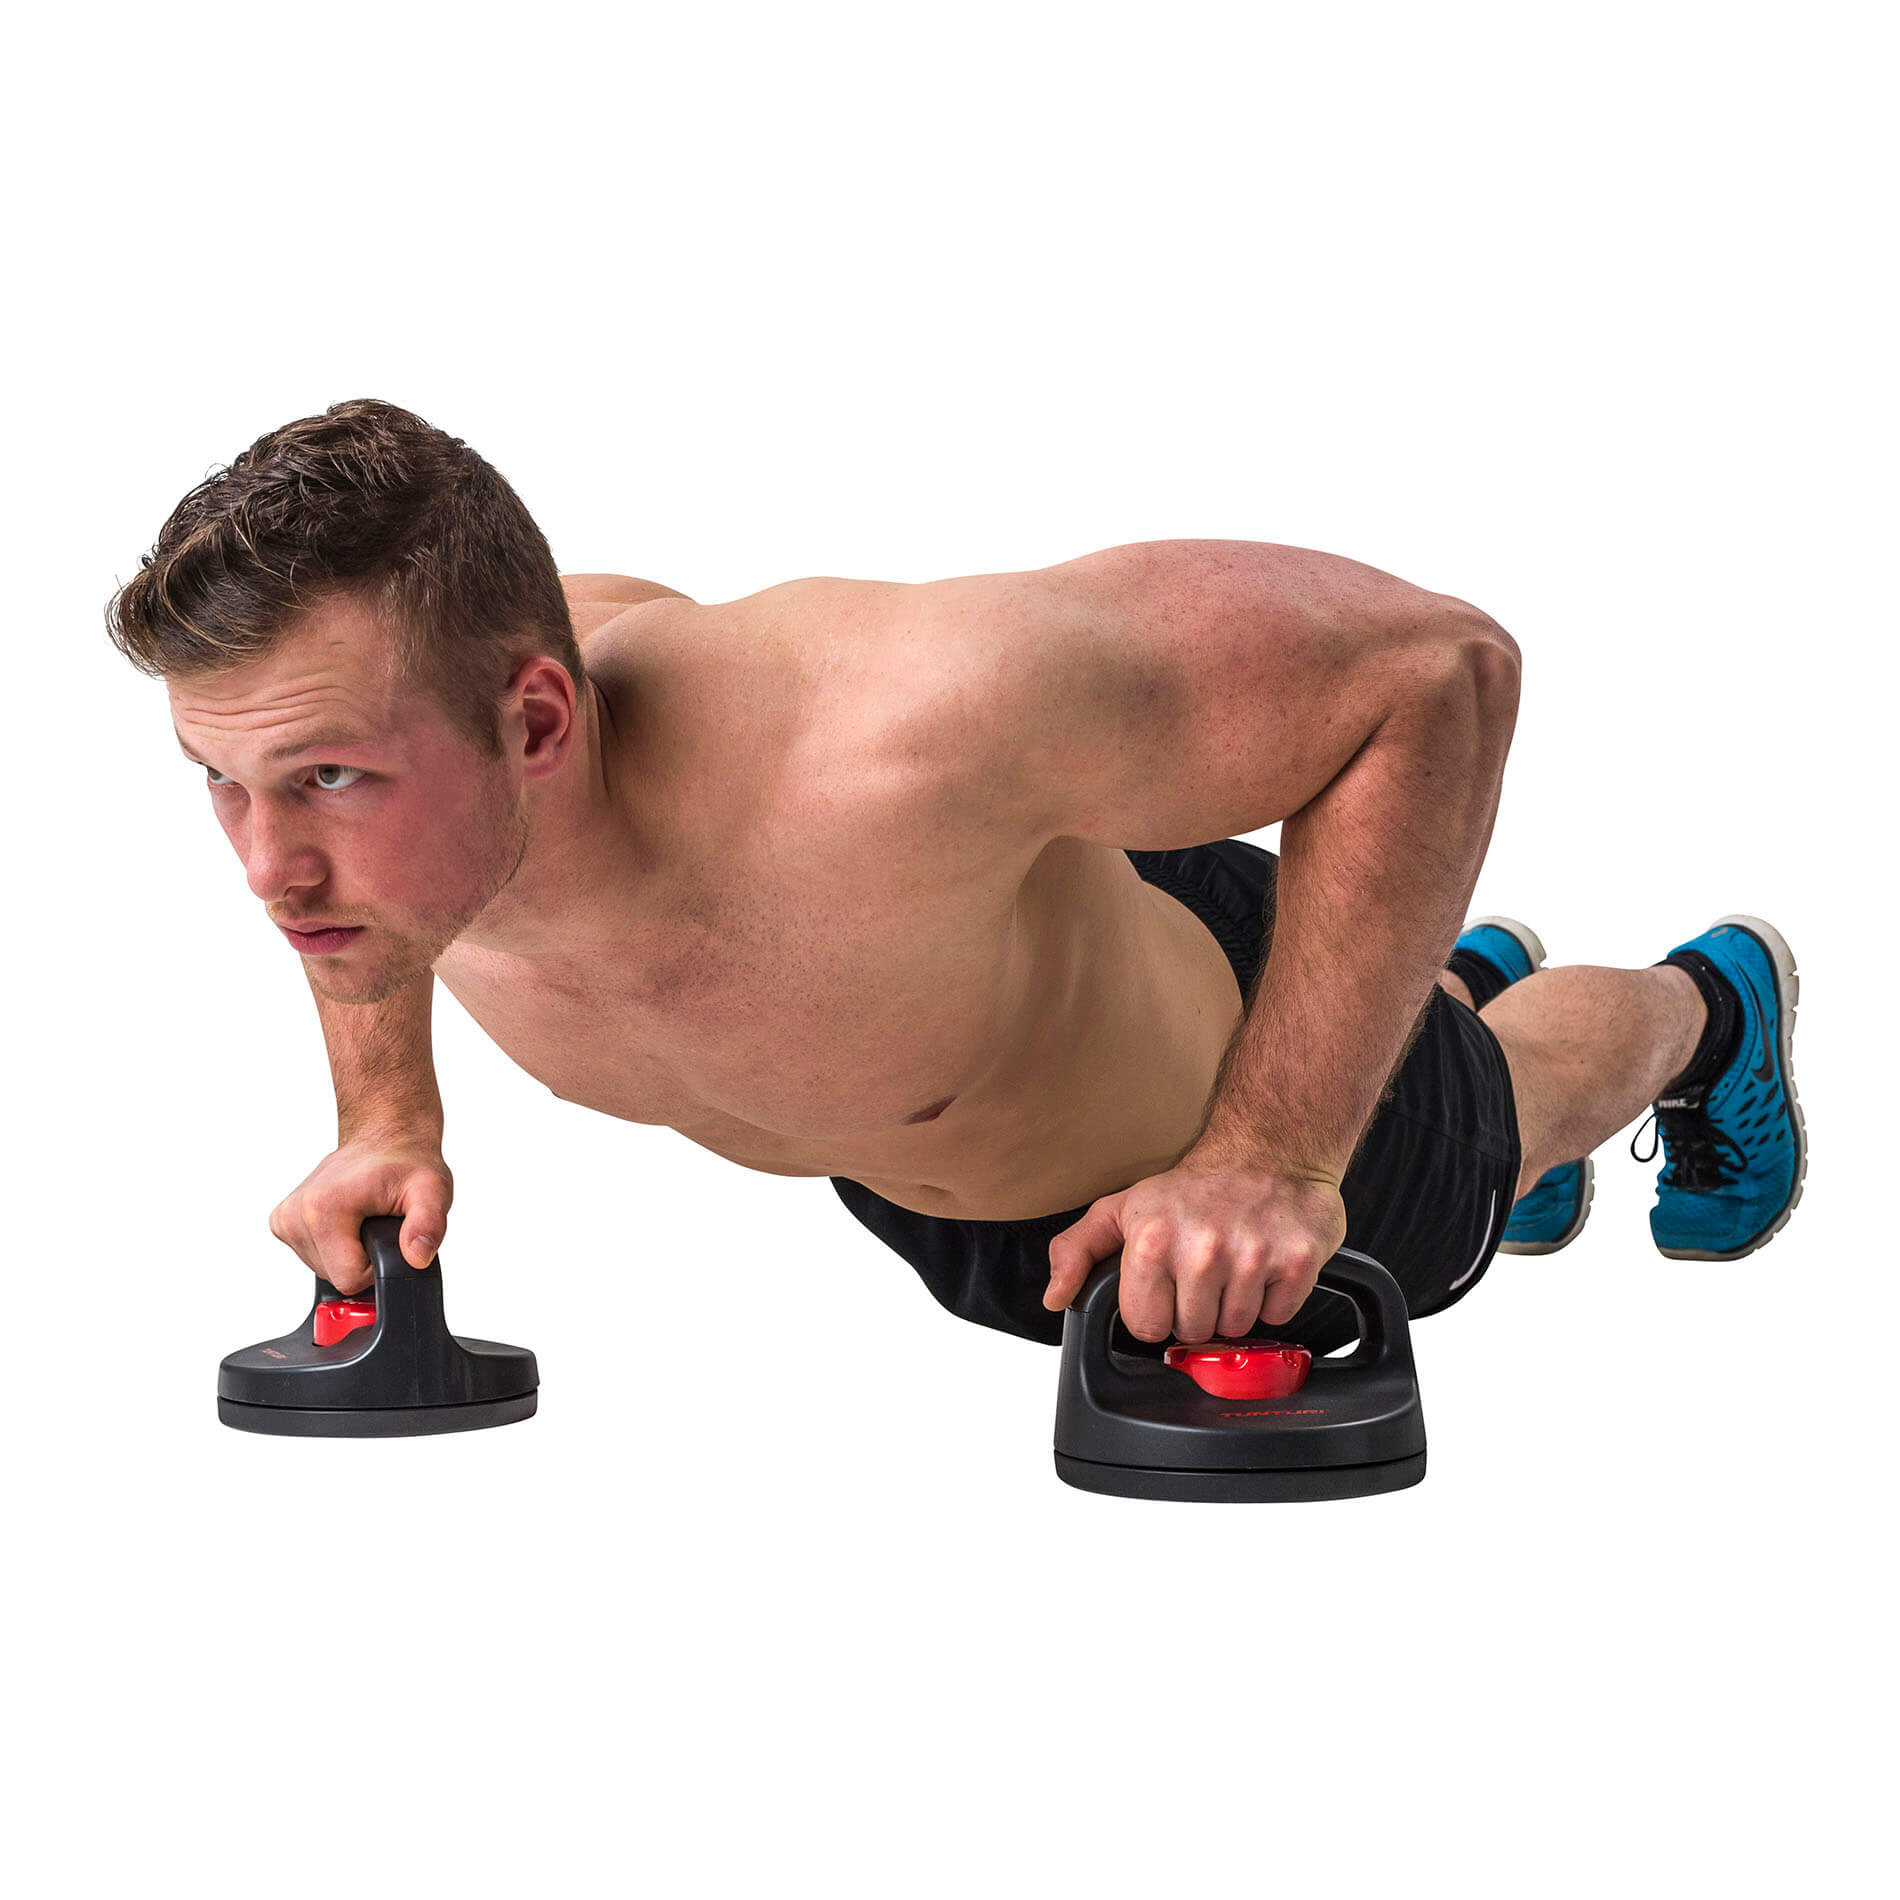 Adjustable Rotating Push Up Stands